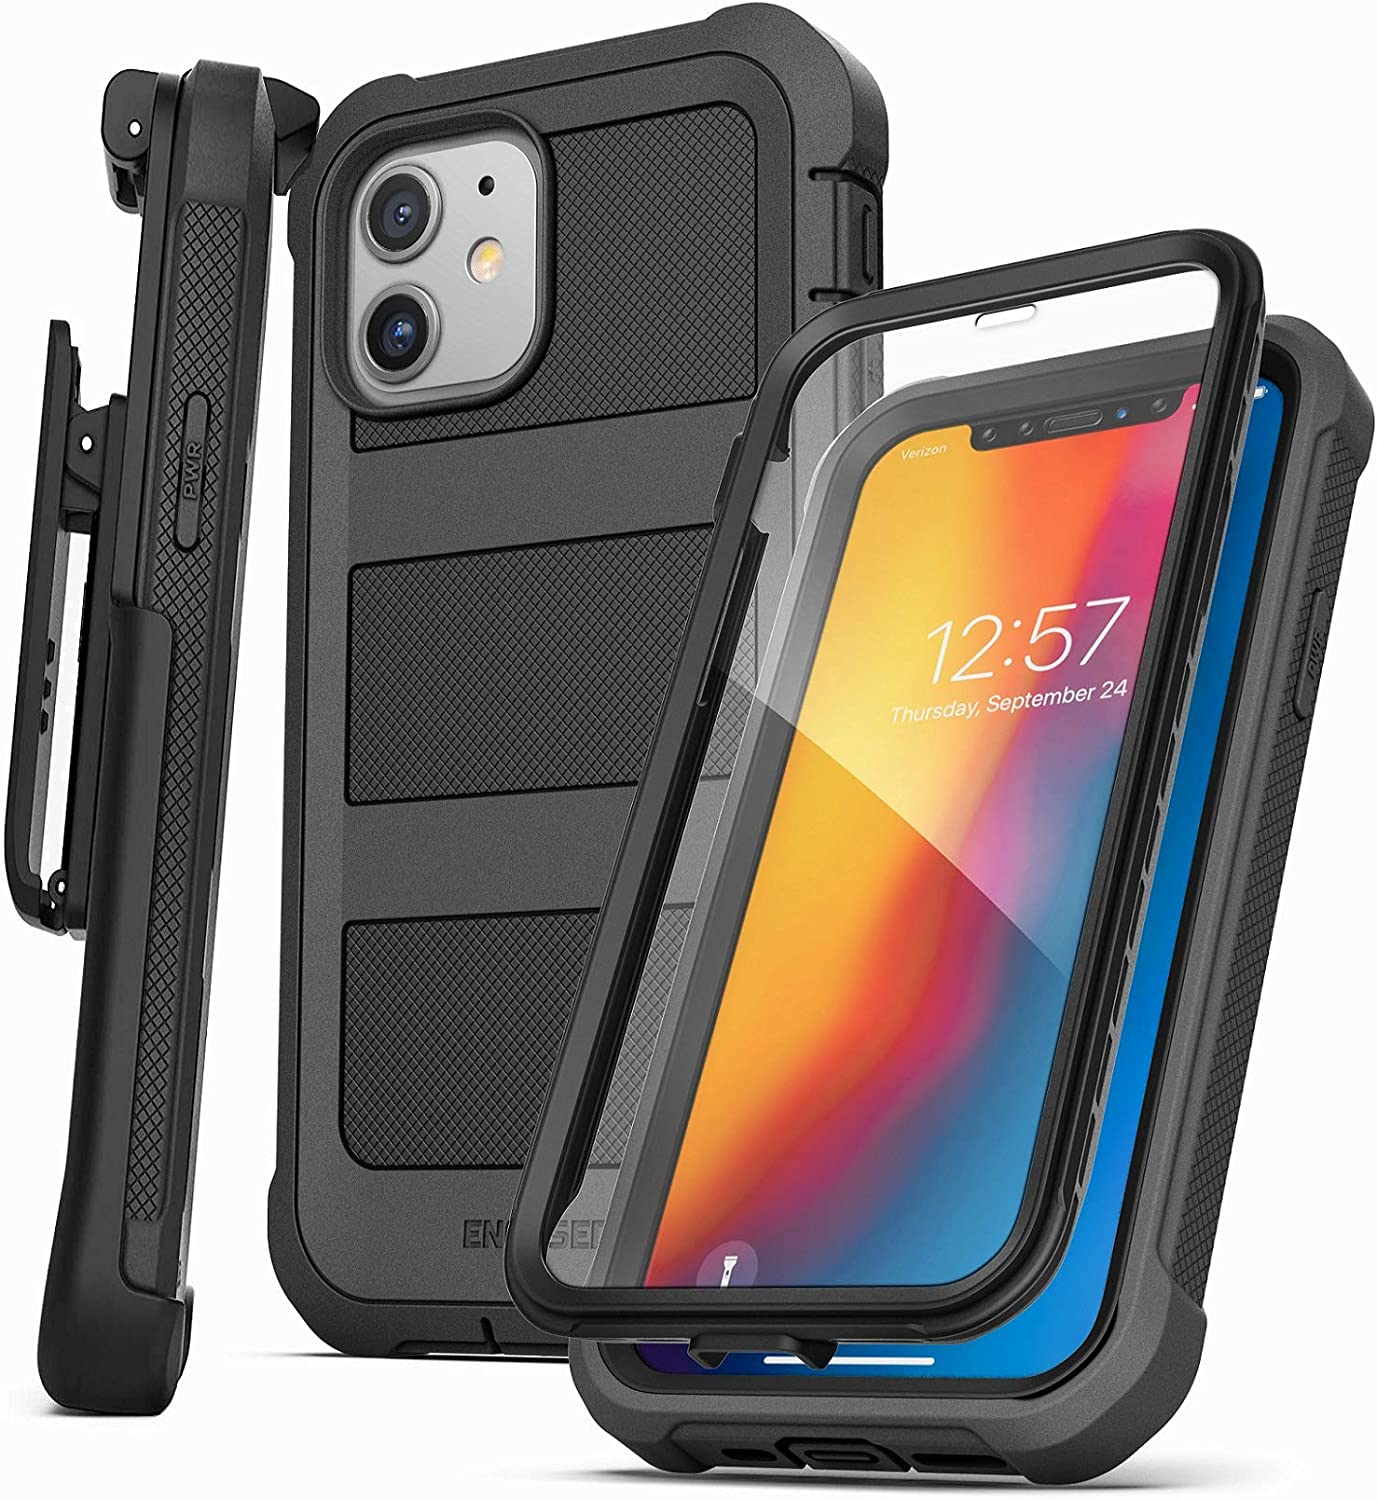 Encased Falcon Armor Designed for iPhone 12 Mini Case with Built-in Screen Protector - Ultra Protective Full-Body Cover with Belt Clip Holster (Black)